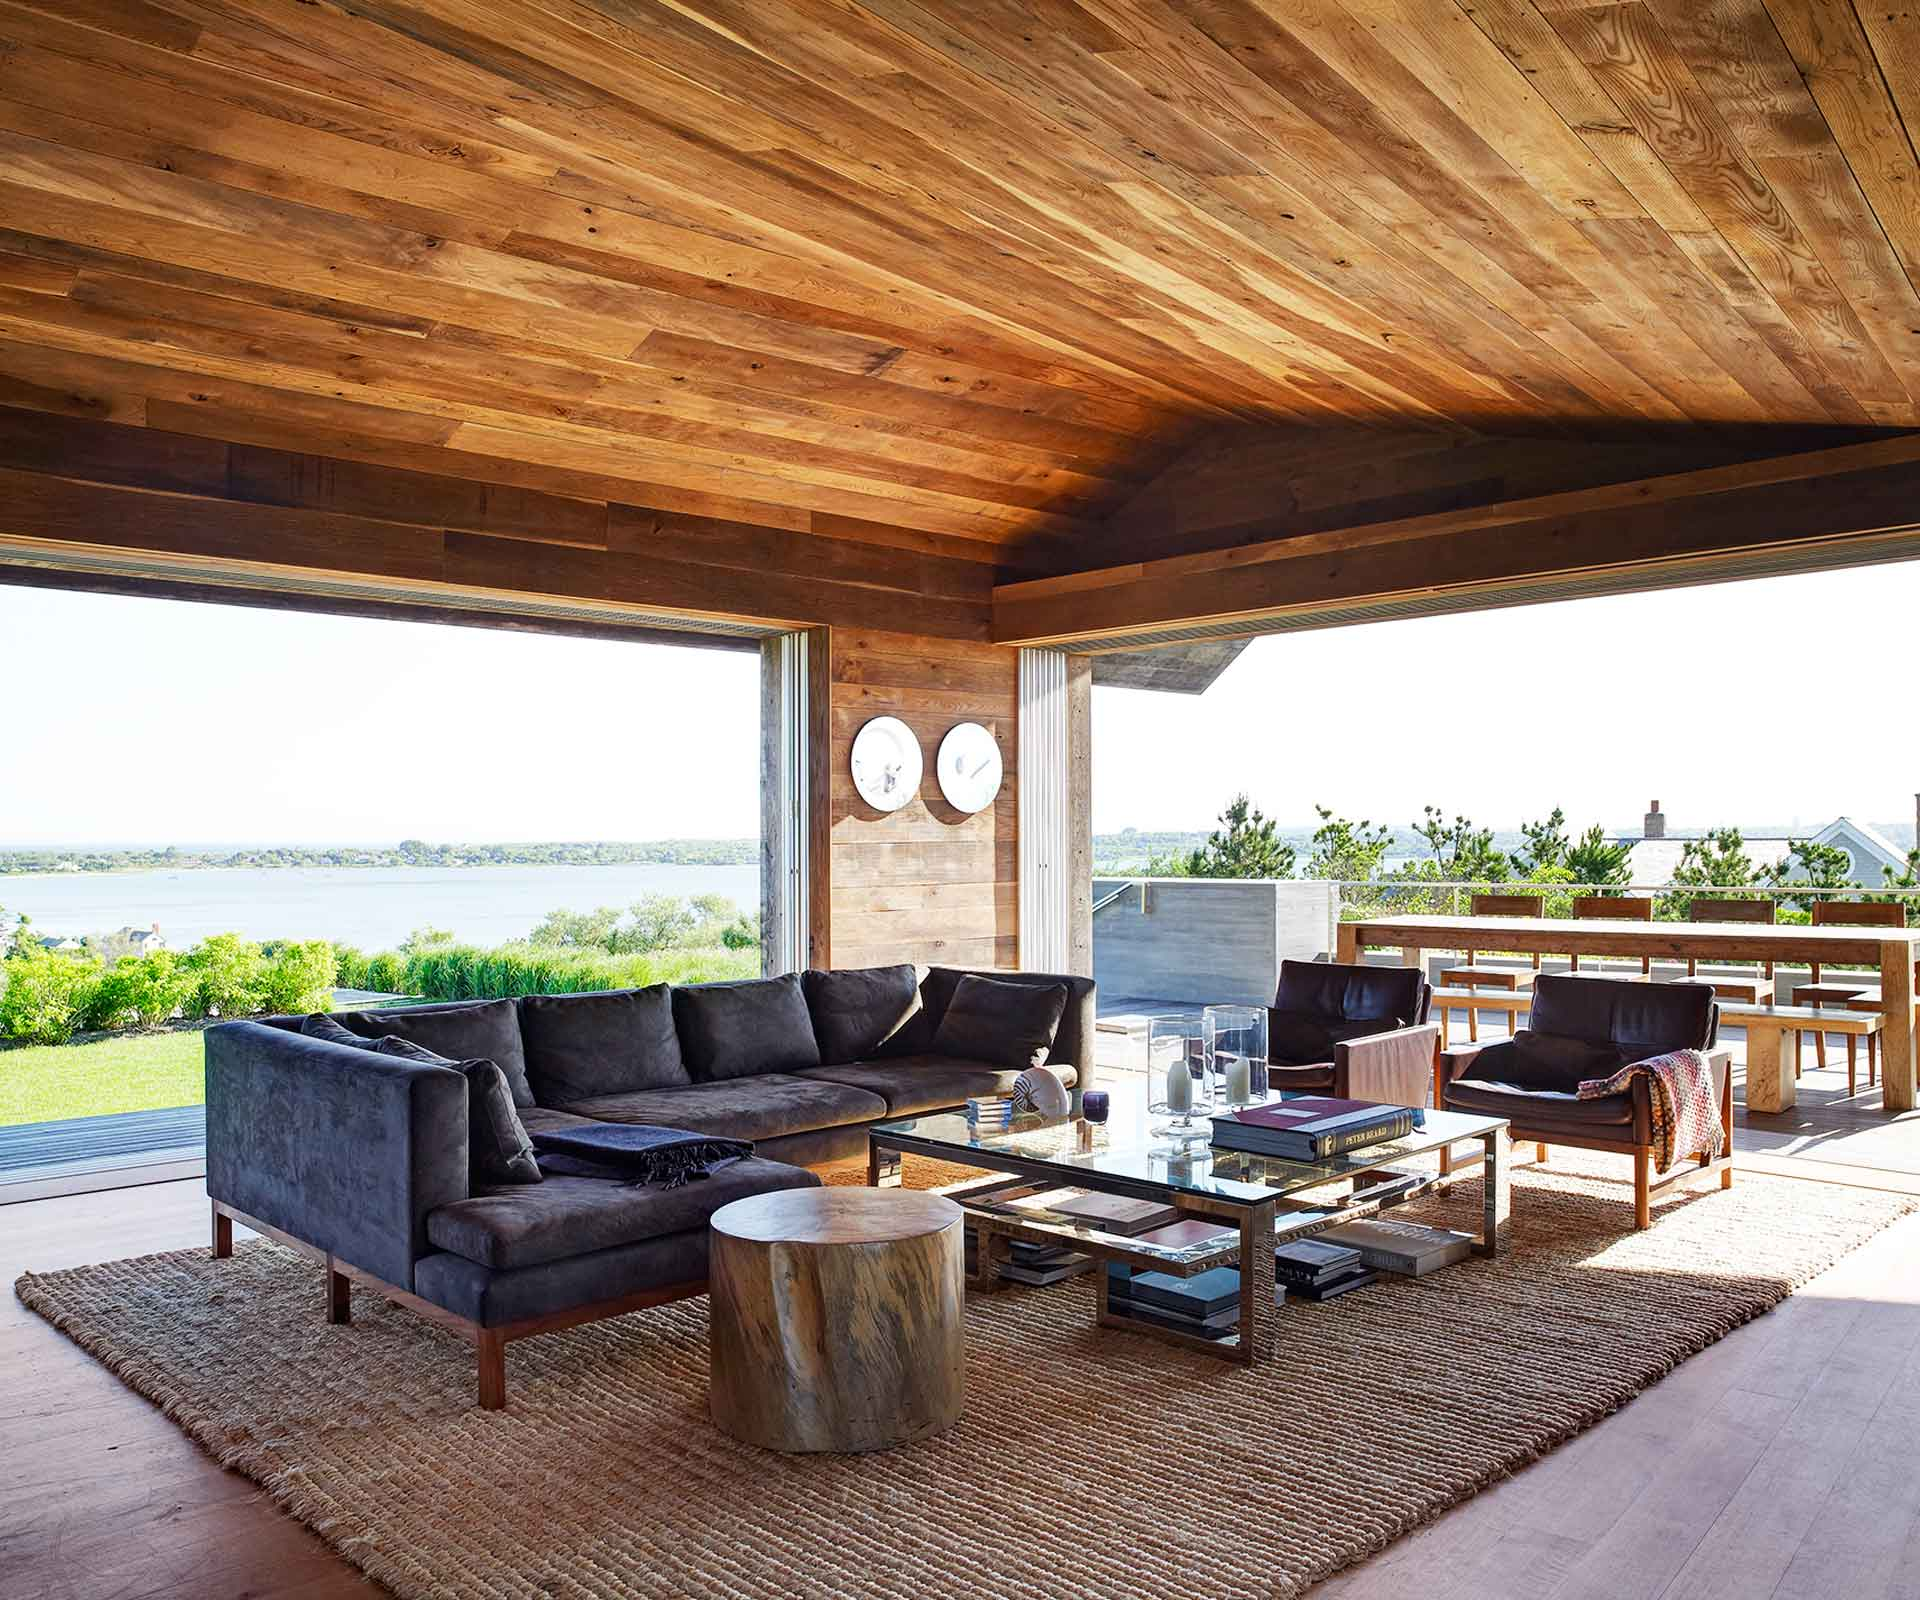 Montauk interior style explained with real life examples